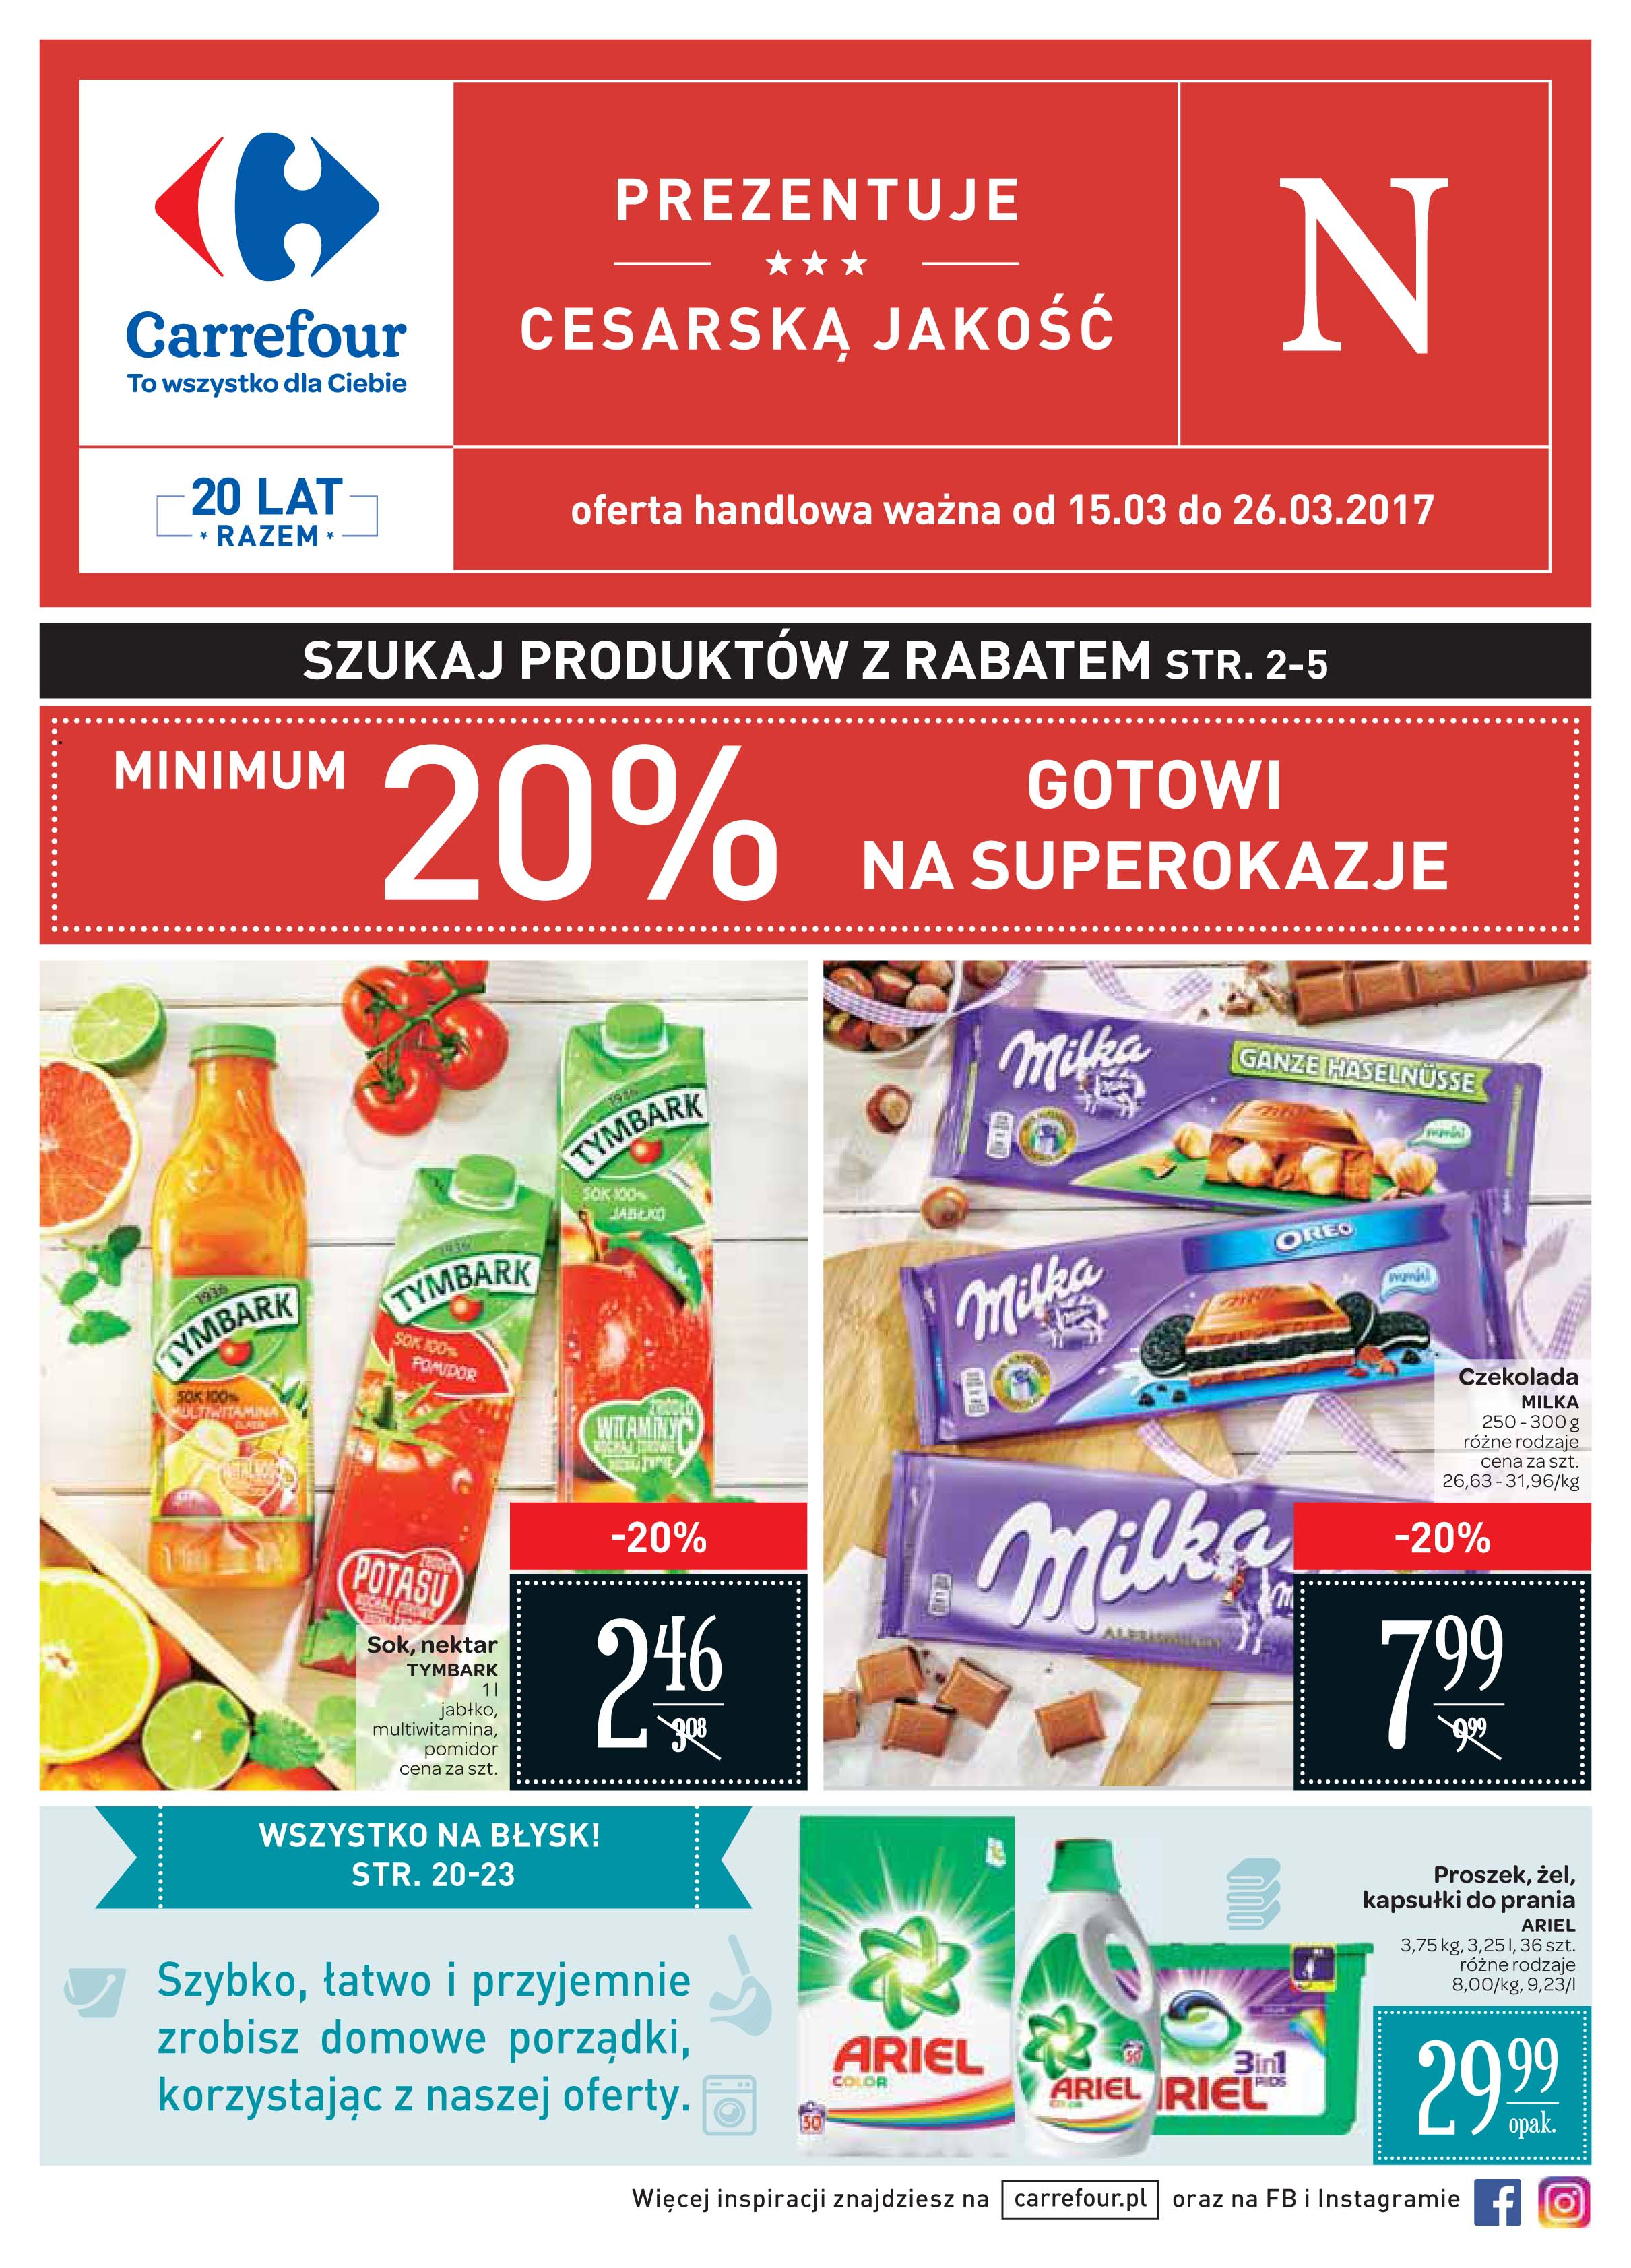 газетка пл, газетка карфур, gazetka carrefour